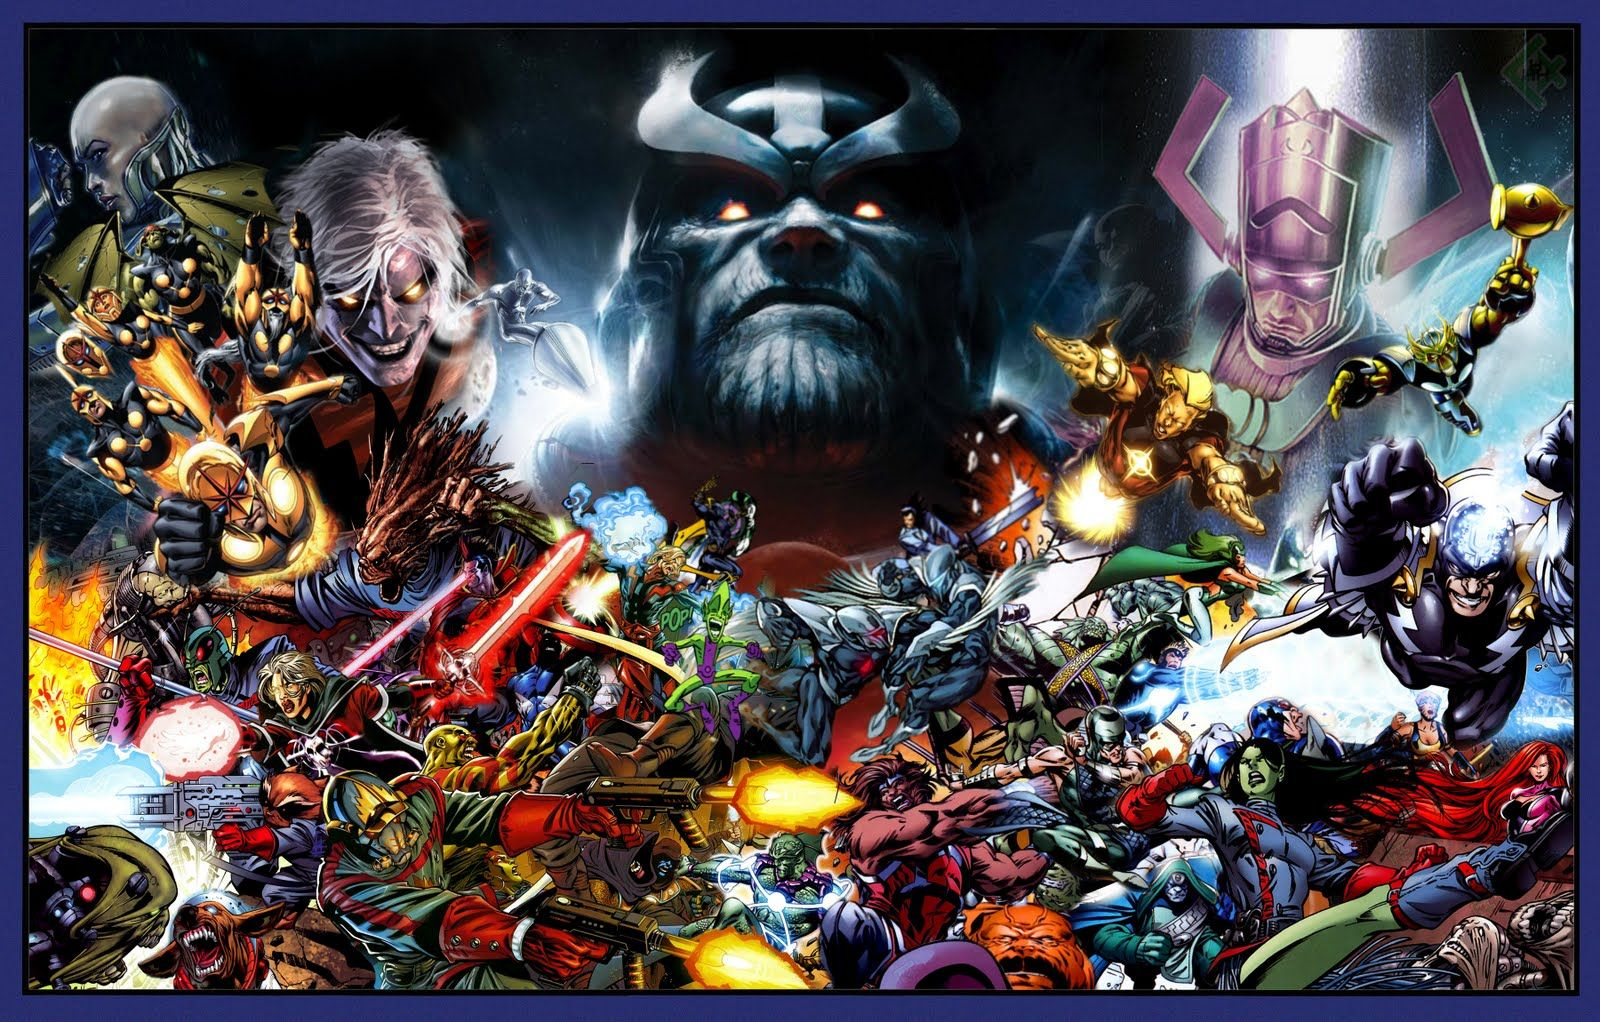 Both Of Them Are Super Villains From Marvel Universe Find More And Vote Now For Your Favorite